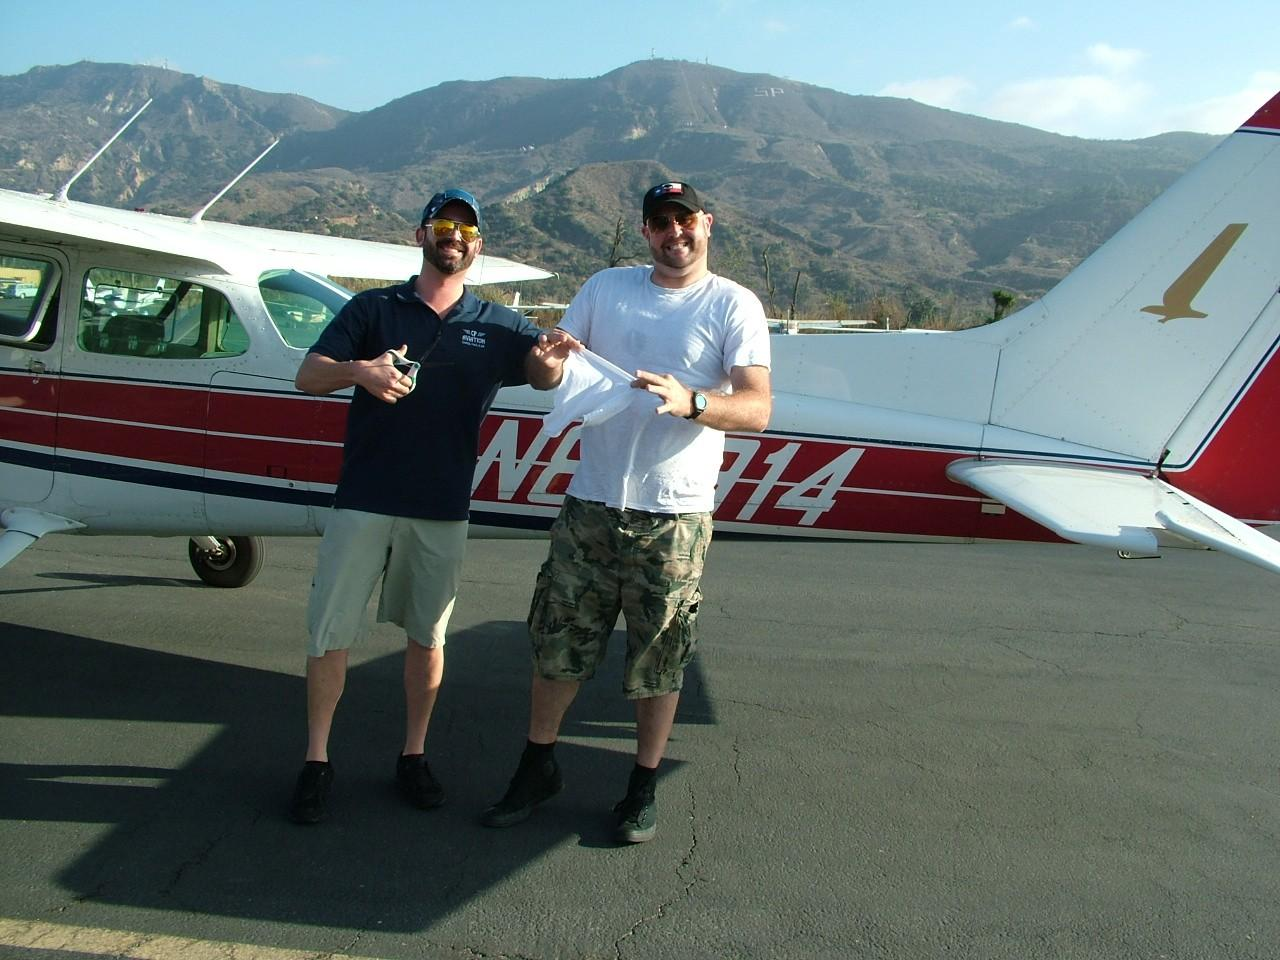 First Solo - Andrew Moseley!